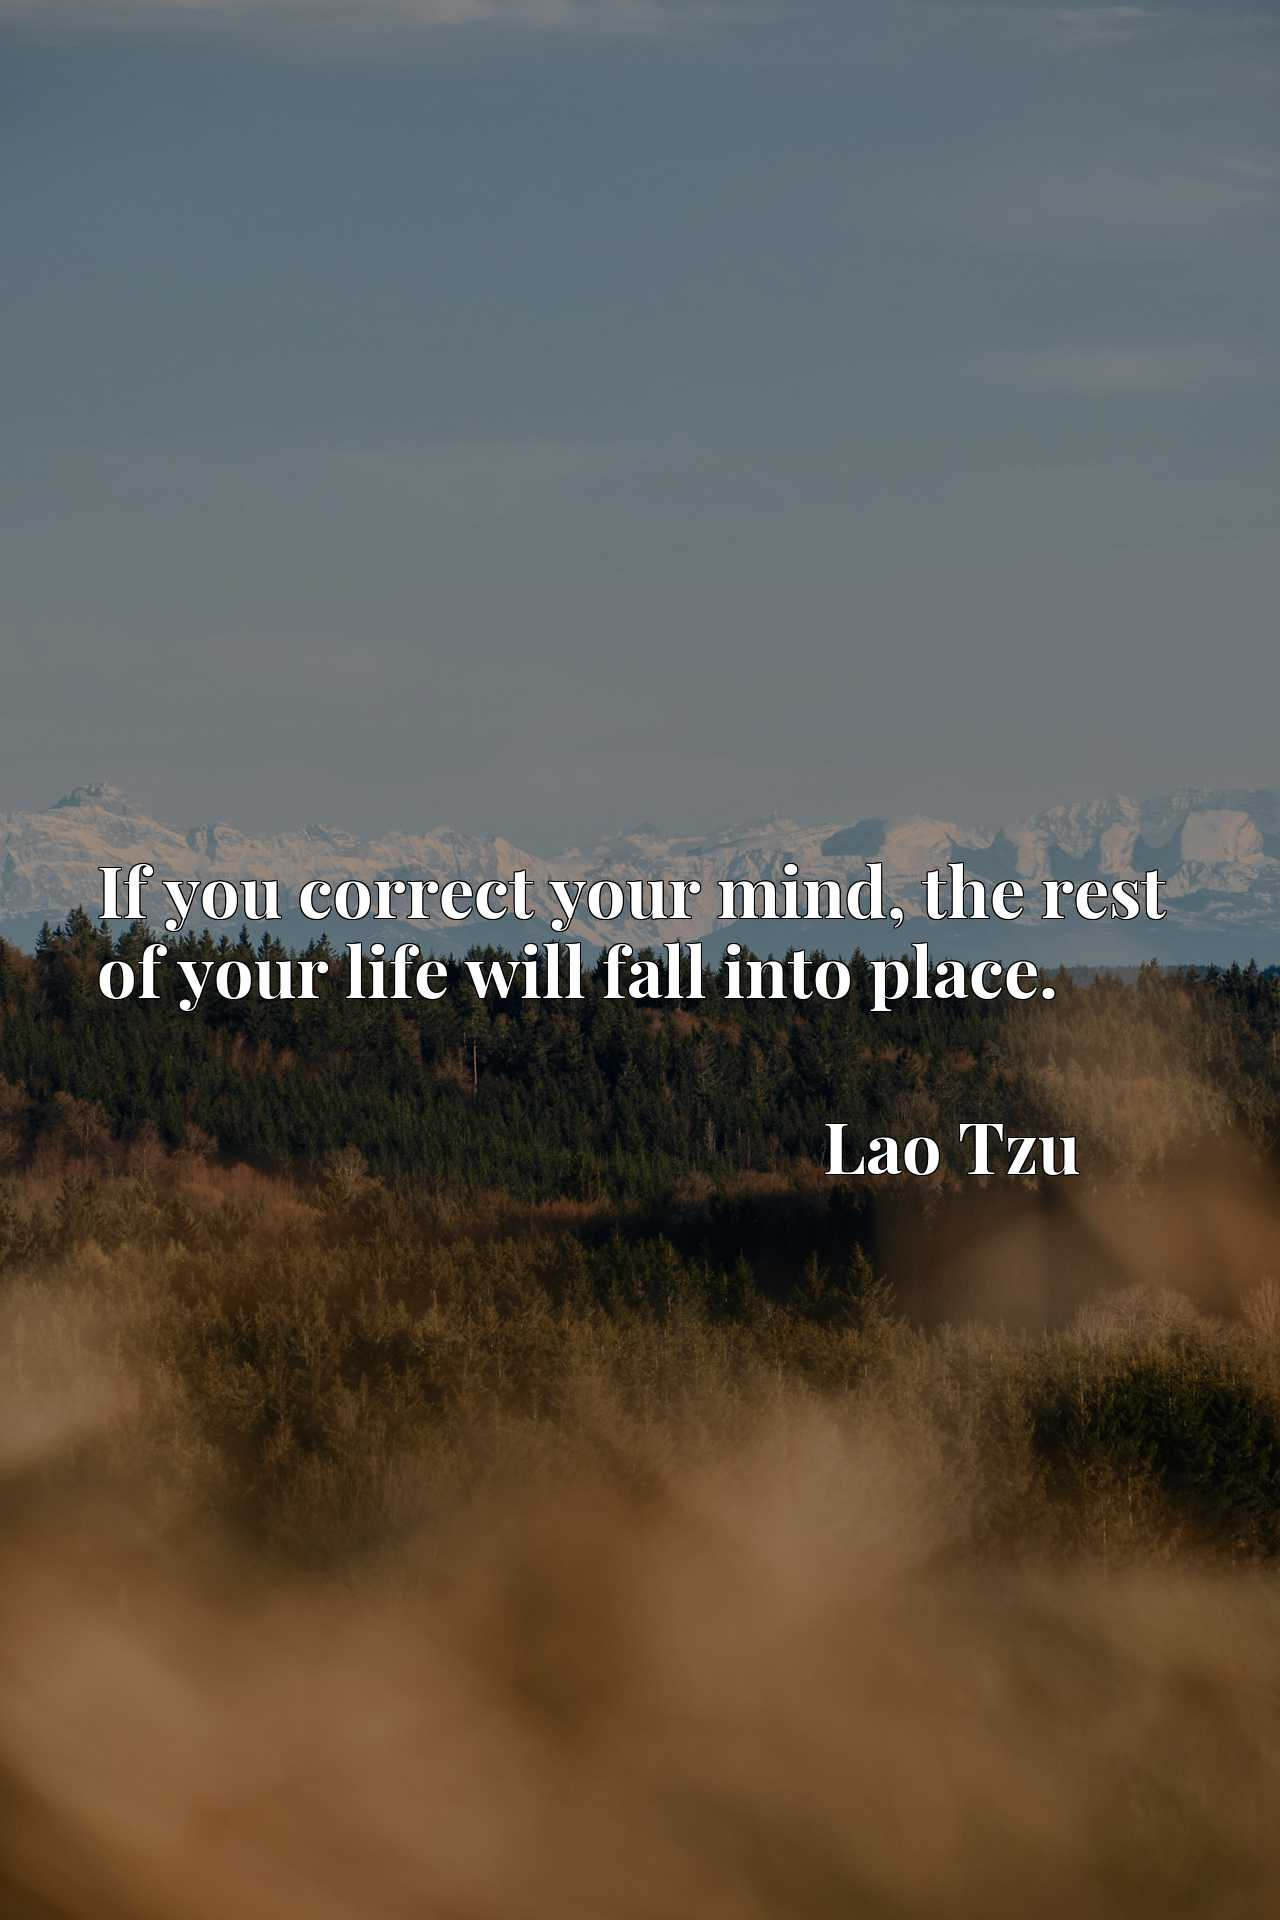 Quote Picture :If you correct your mind, the rest of your life will fall into place.